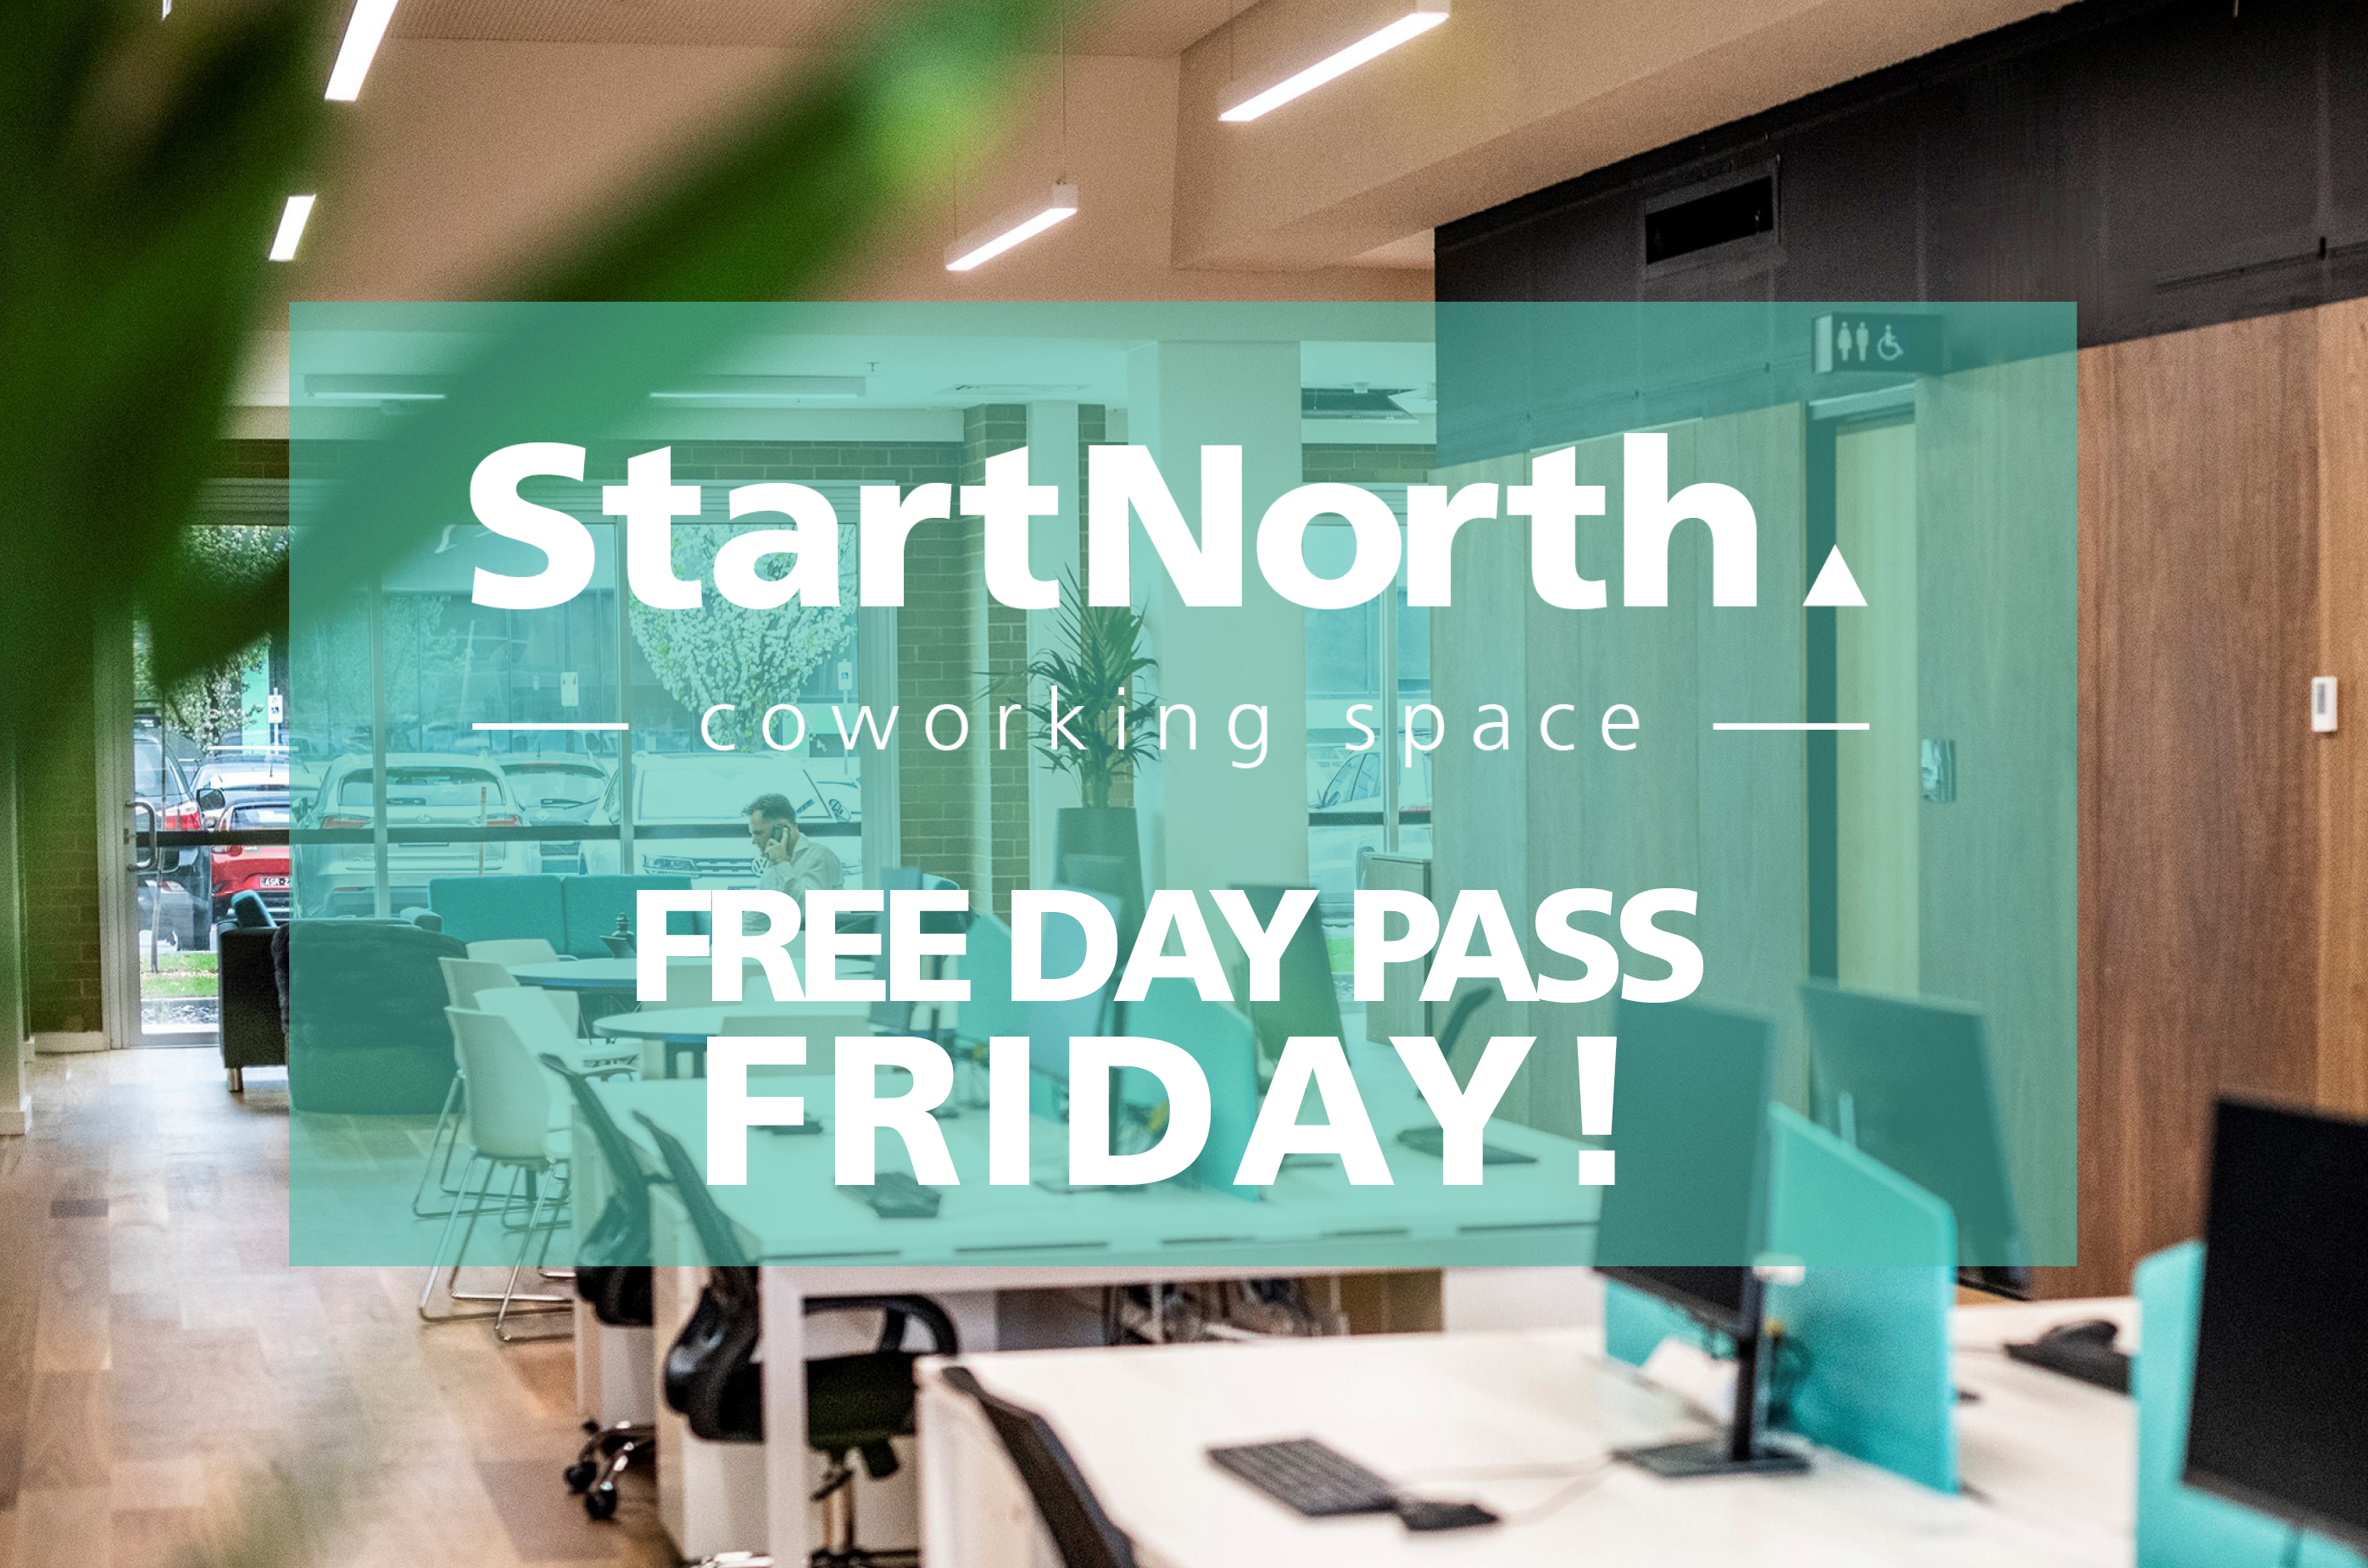 Free Day Pass Friday with Lunch & Learn Session